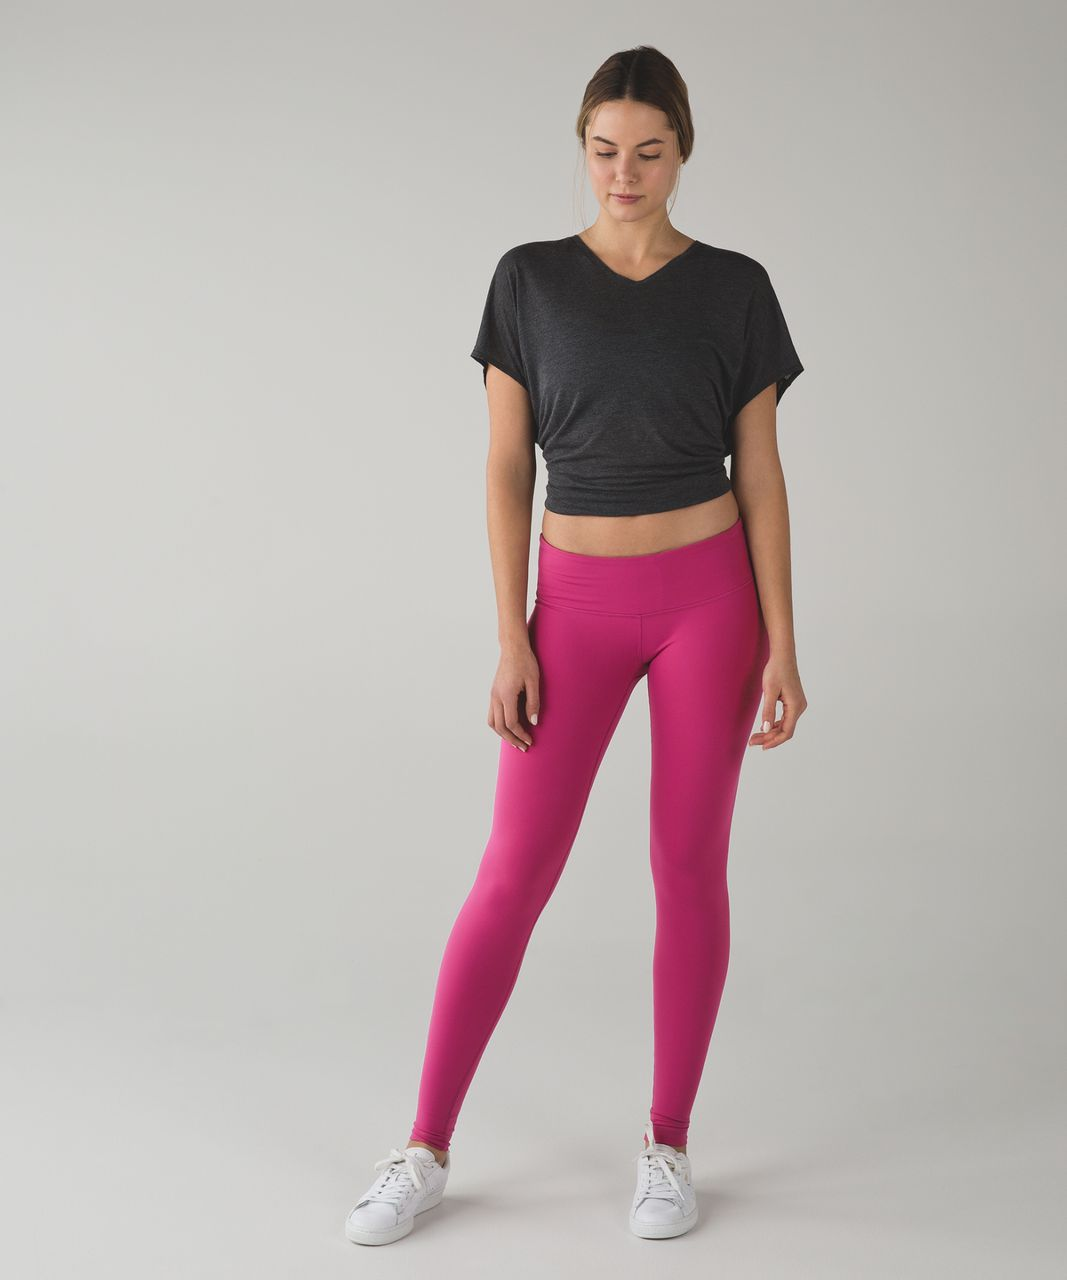 Lululemon Wunder Under Pant III *Full-On Luon - Raspberry